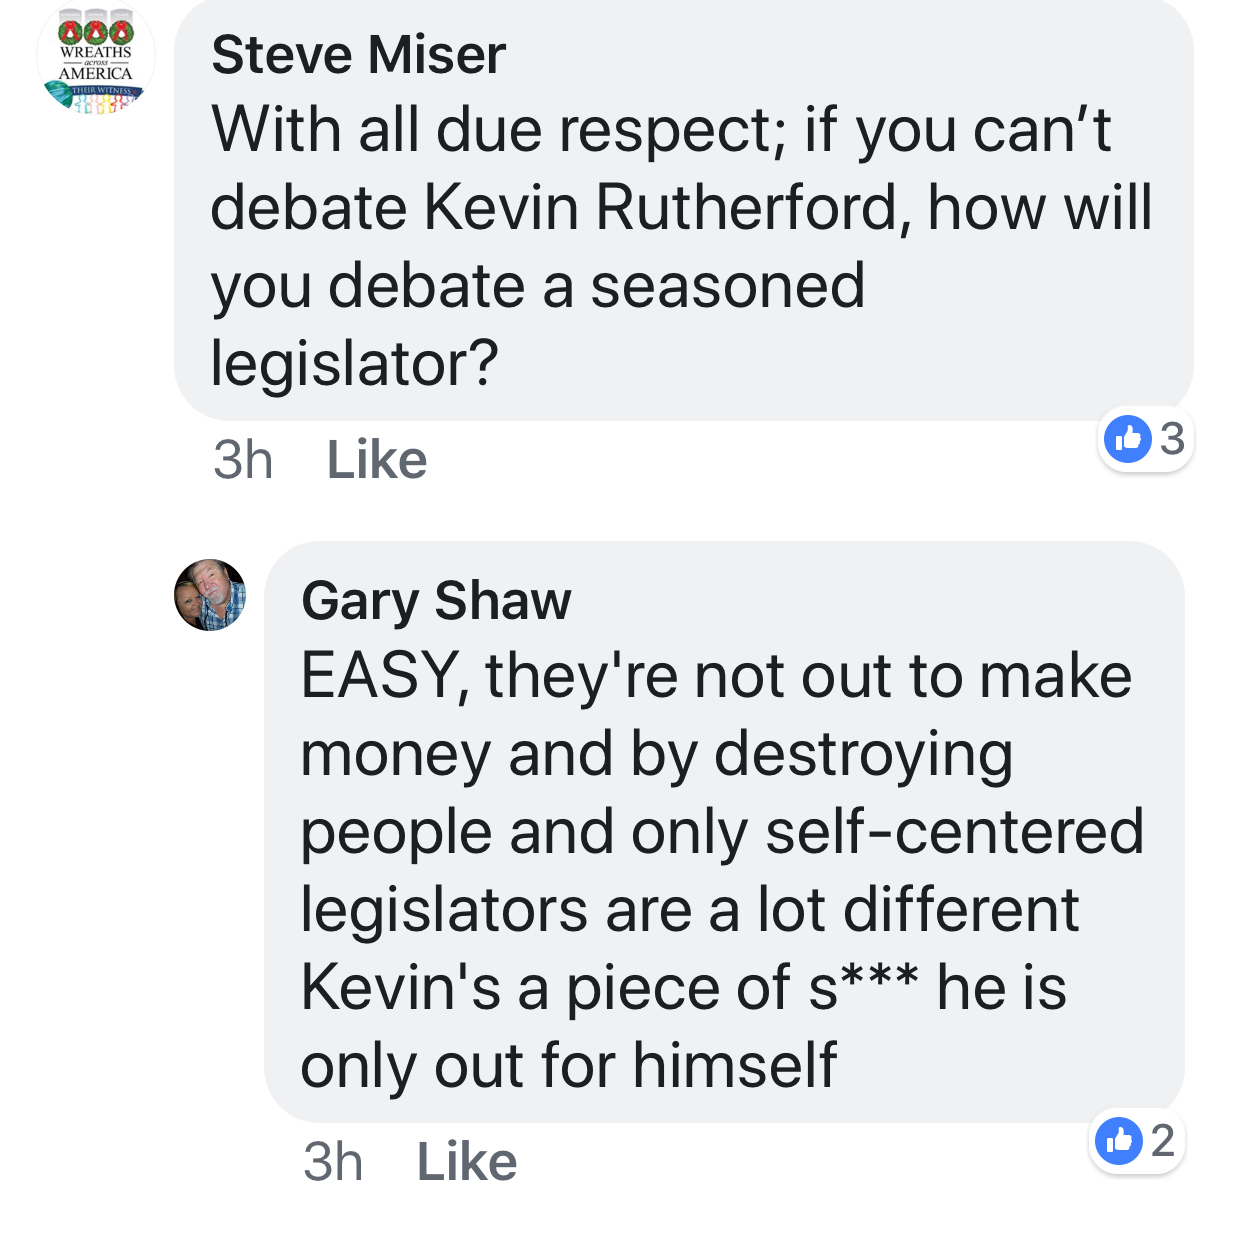 Mr. Shaw's reply to a question in the UDAA Facebook Group.